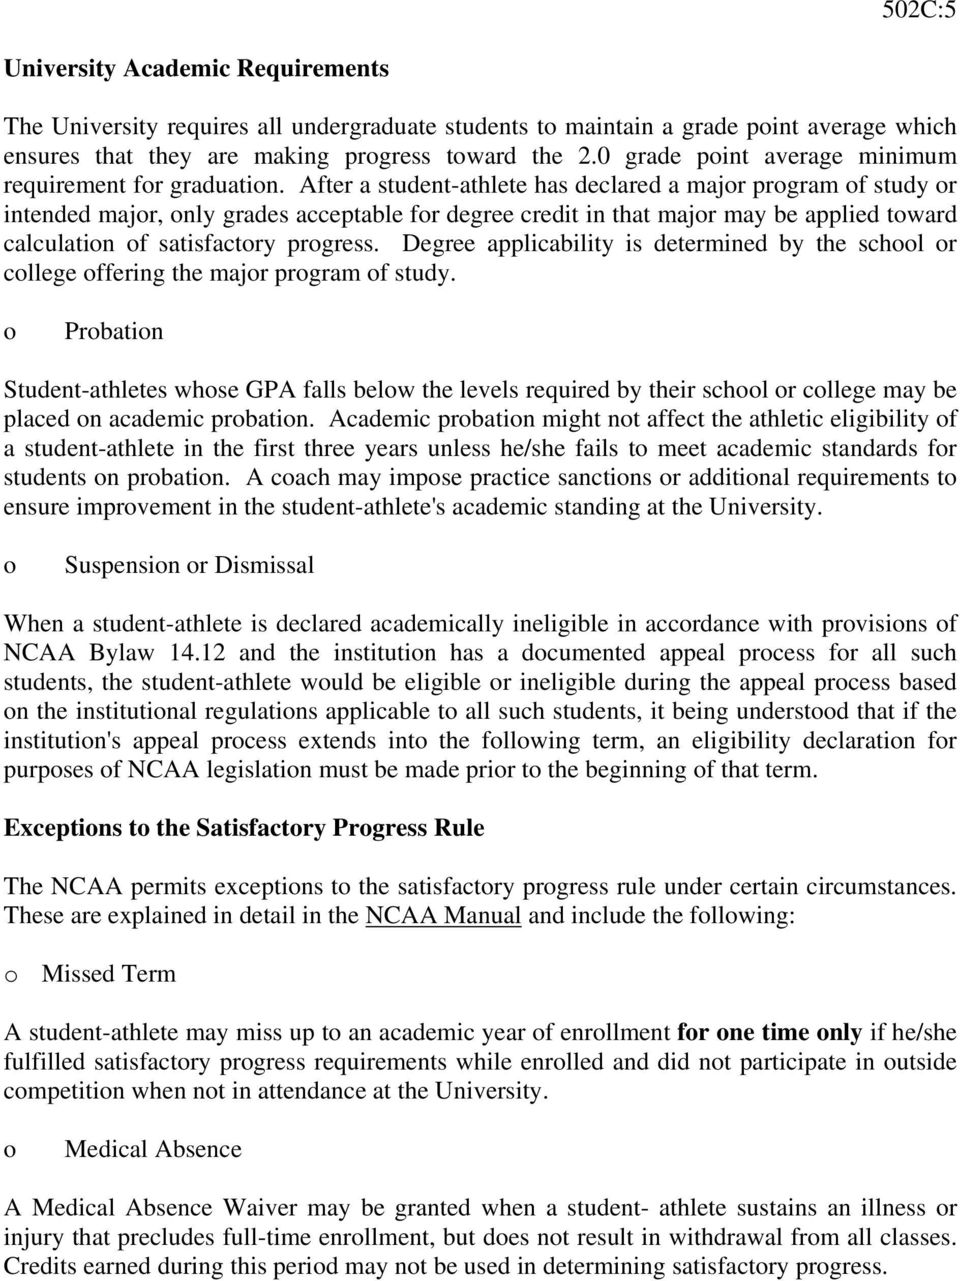 After a student-athlete has declared a major program of study or intended major, only grades acceptable for degree credit in that major may be applied toward calculation of satisfactory progress.